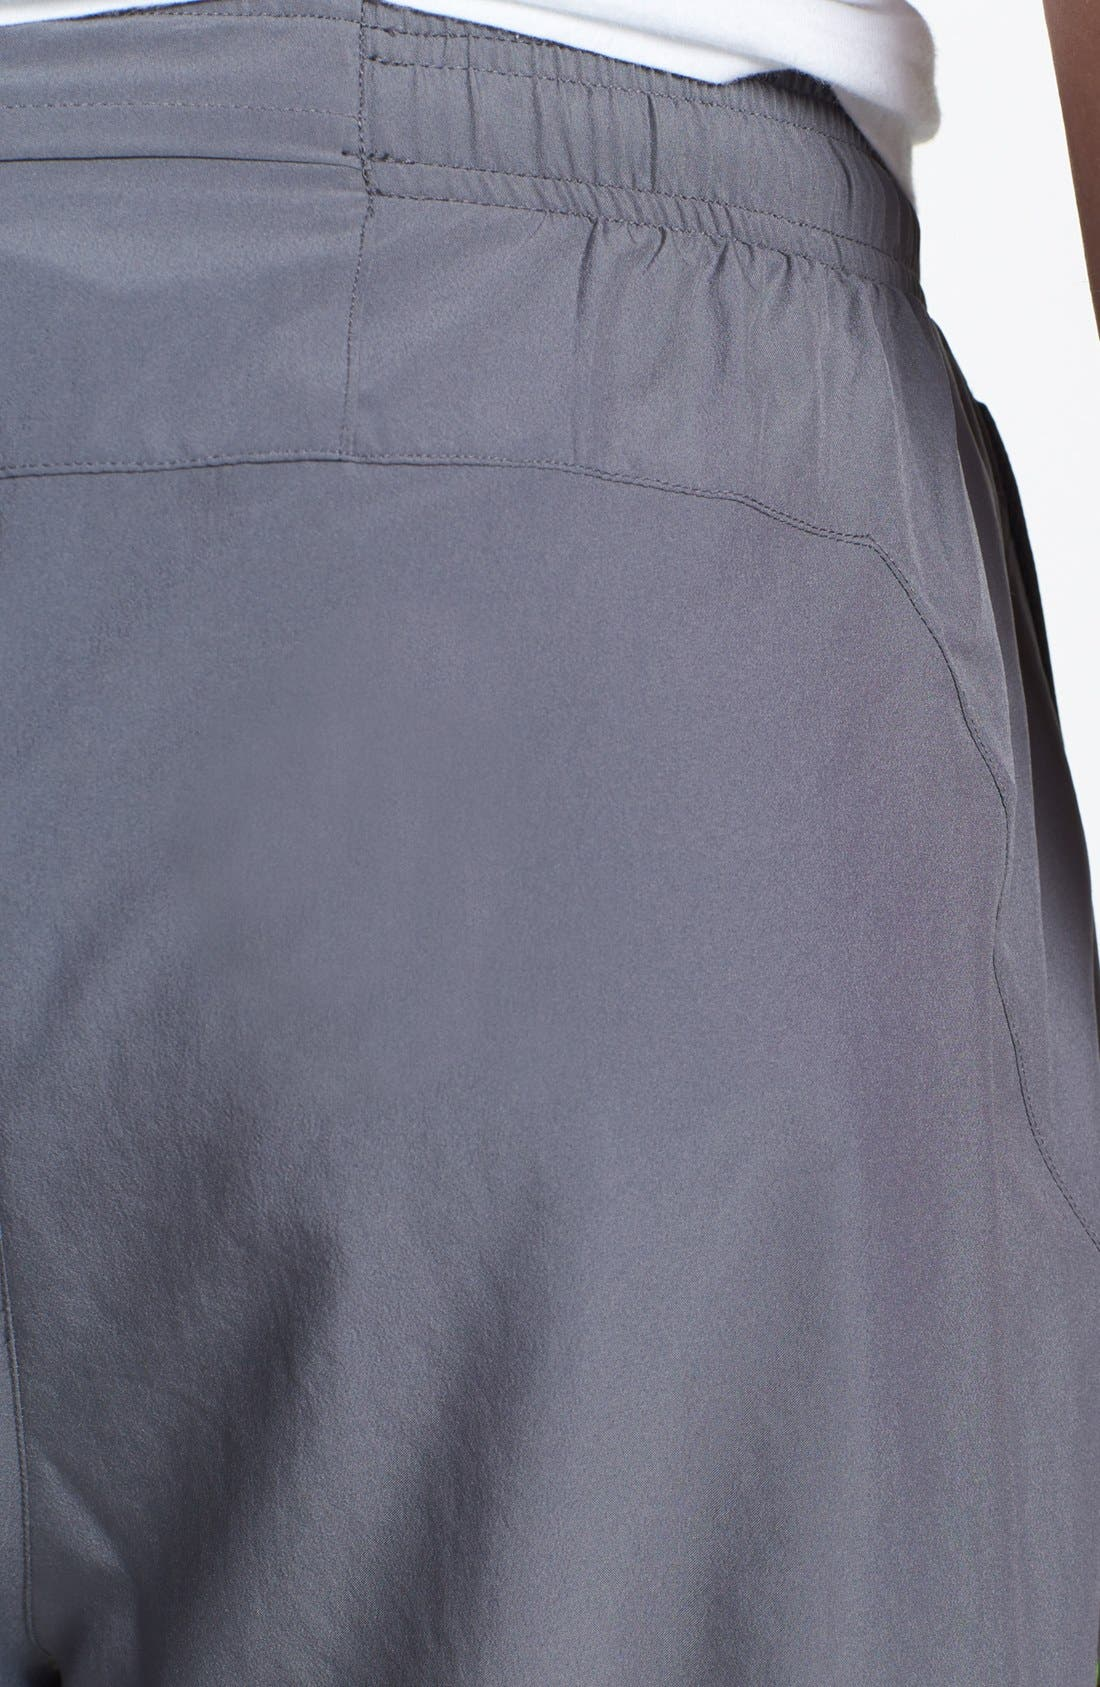 Alternate Image 3  - Under Armour 'Imminent' Woven Running Pants